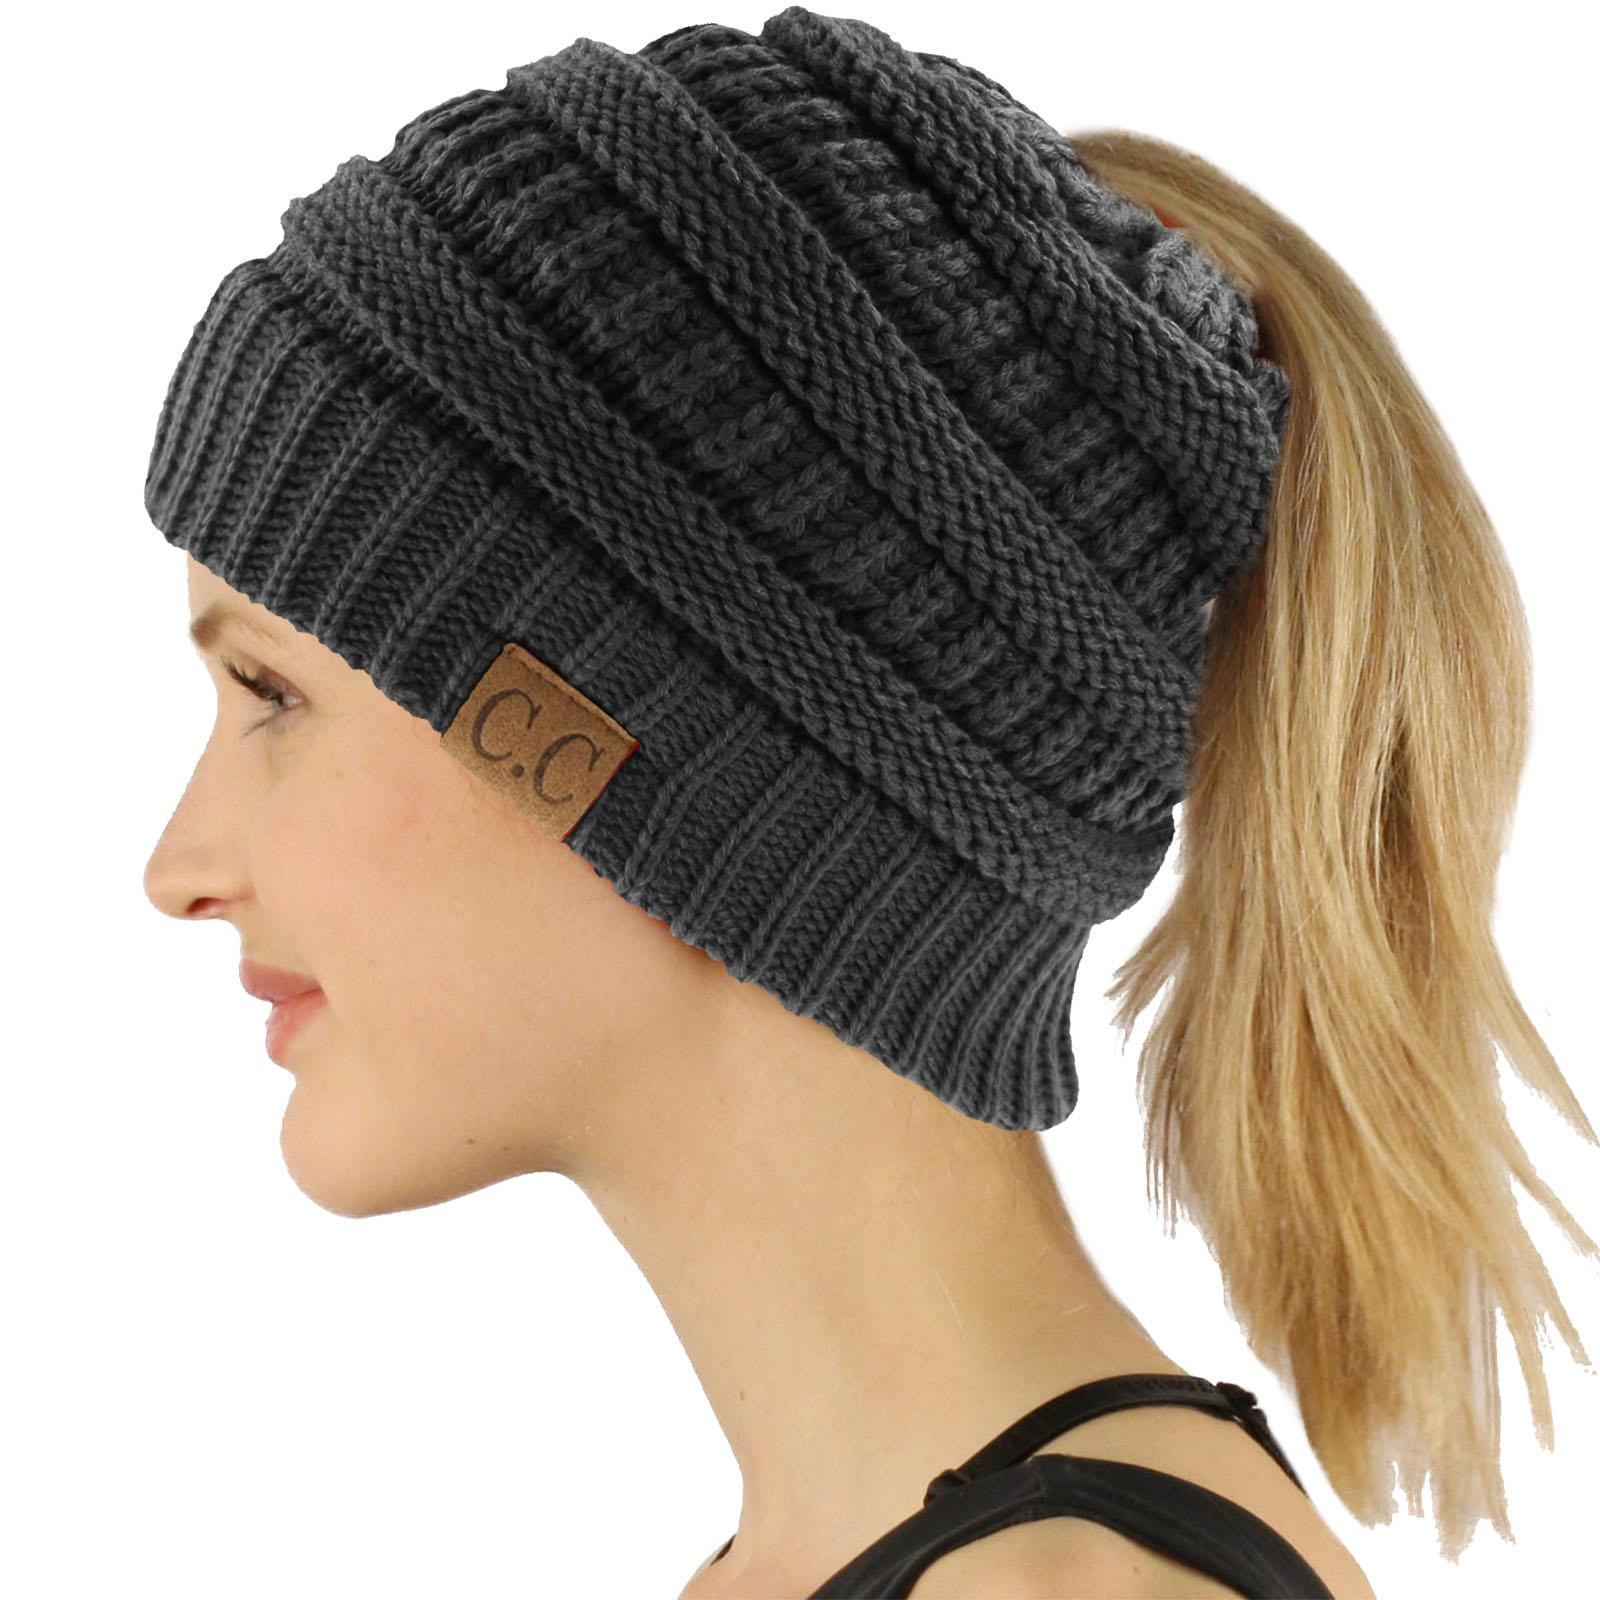 CC Beanietail Messy High Bun Ponytail Stretchy Knit Beanie